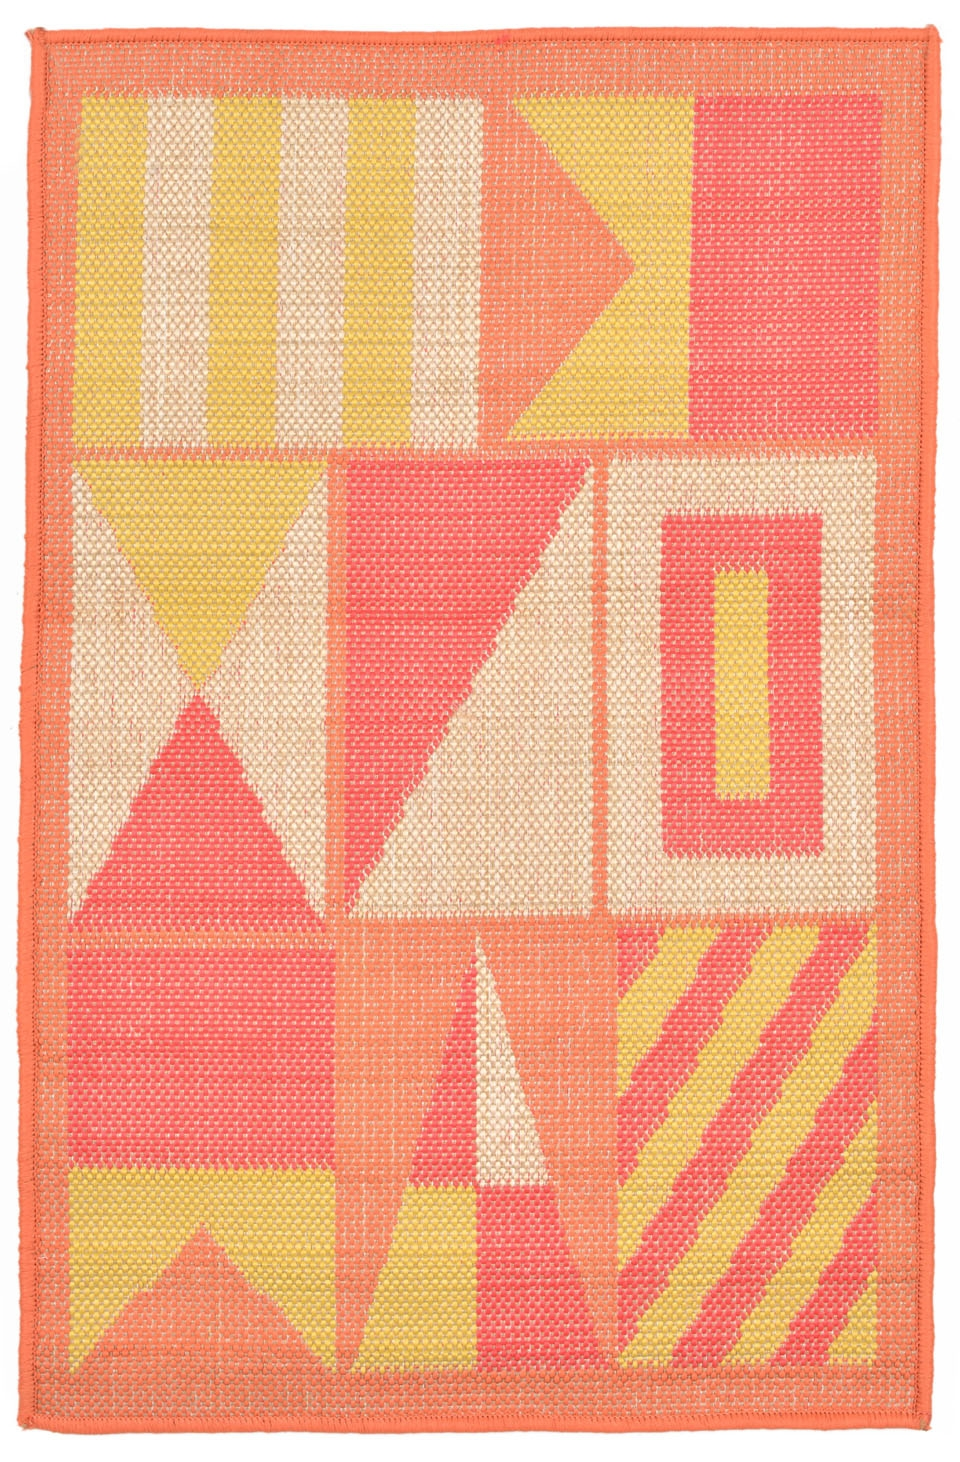 Transocean playa 1355 74 signal flags warm rug for Warm rugs